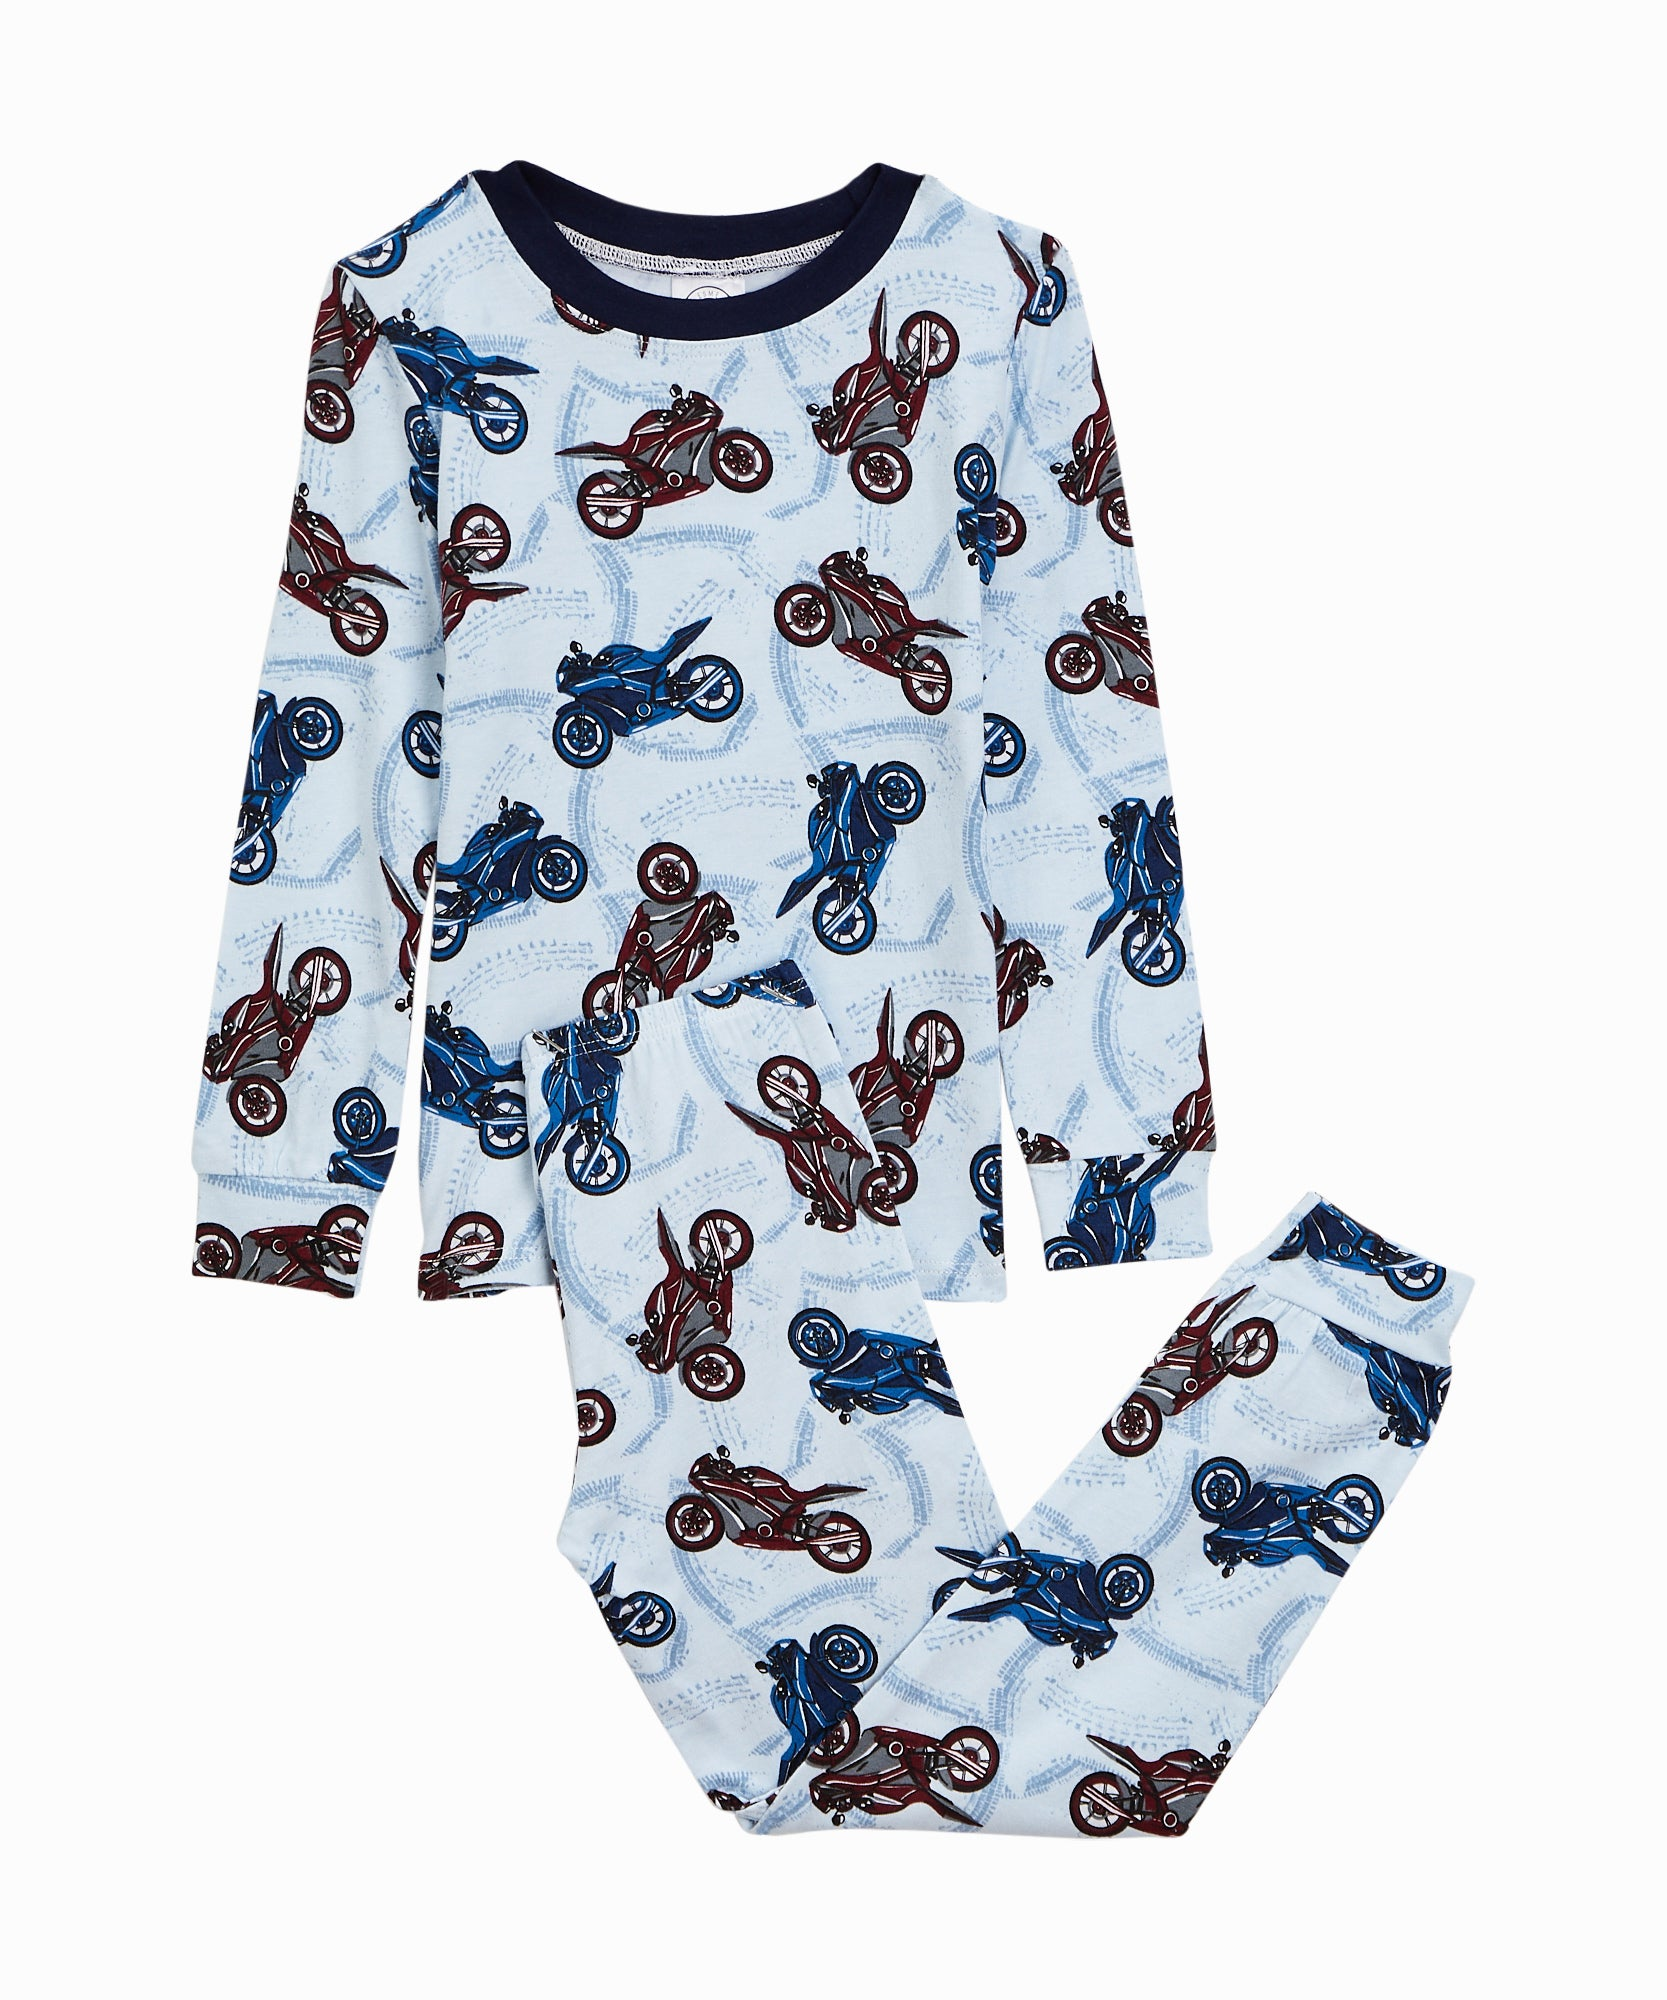 Motorcycle Blue PJ Set